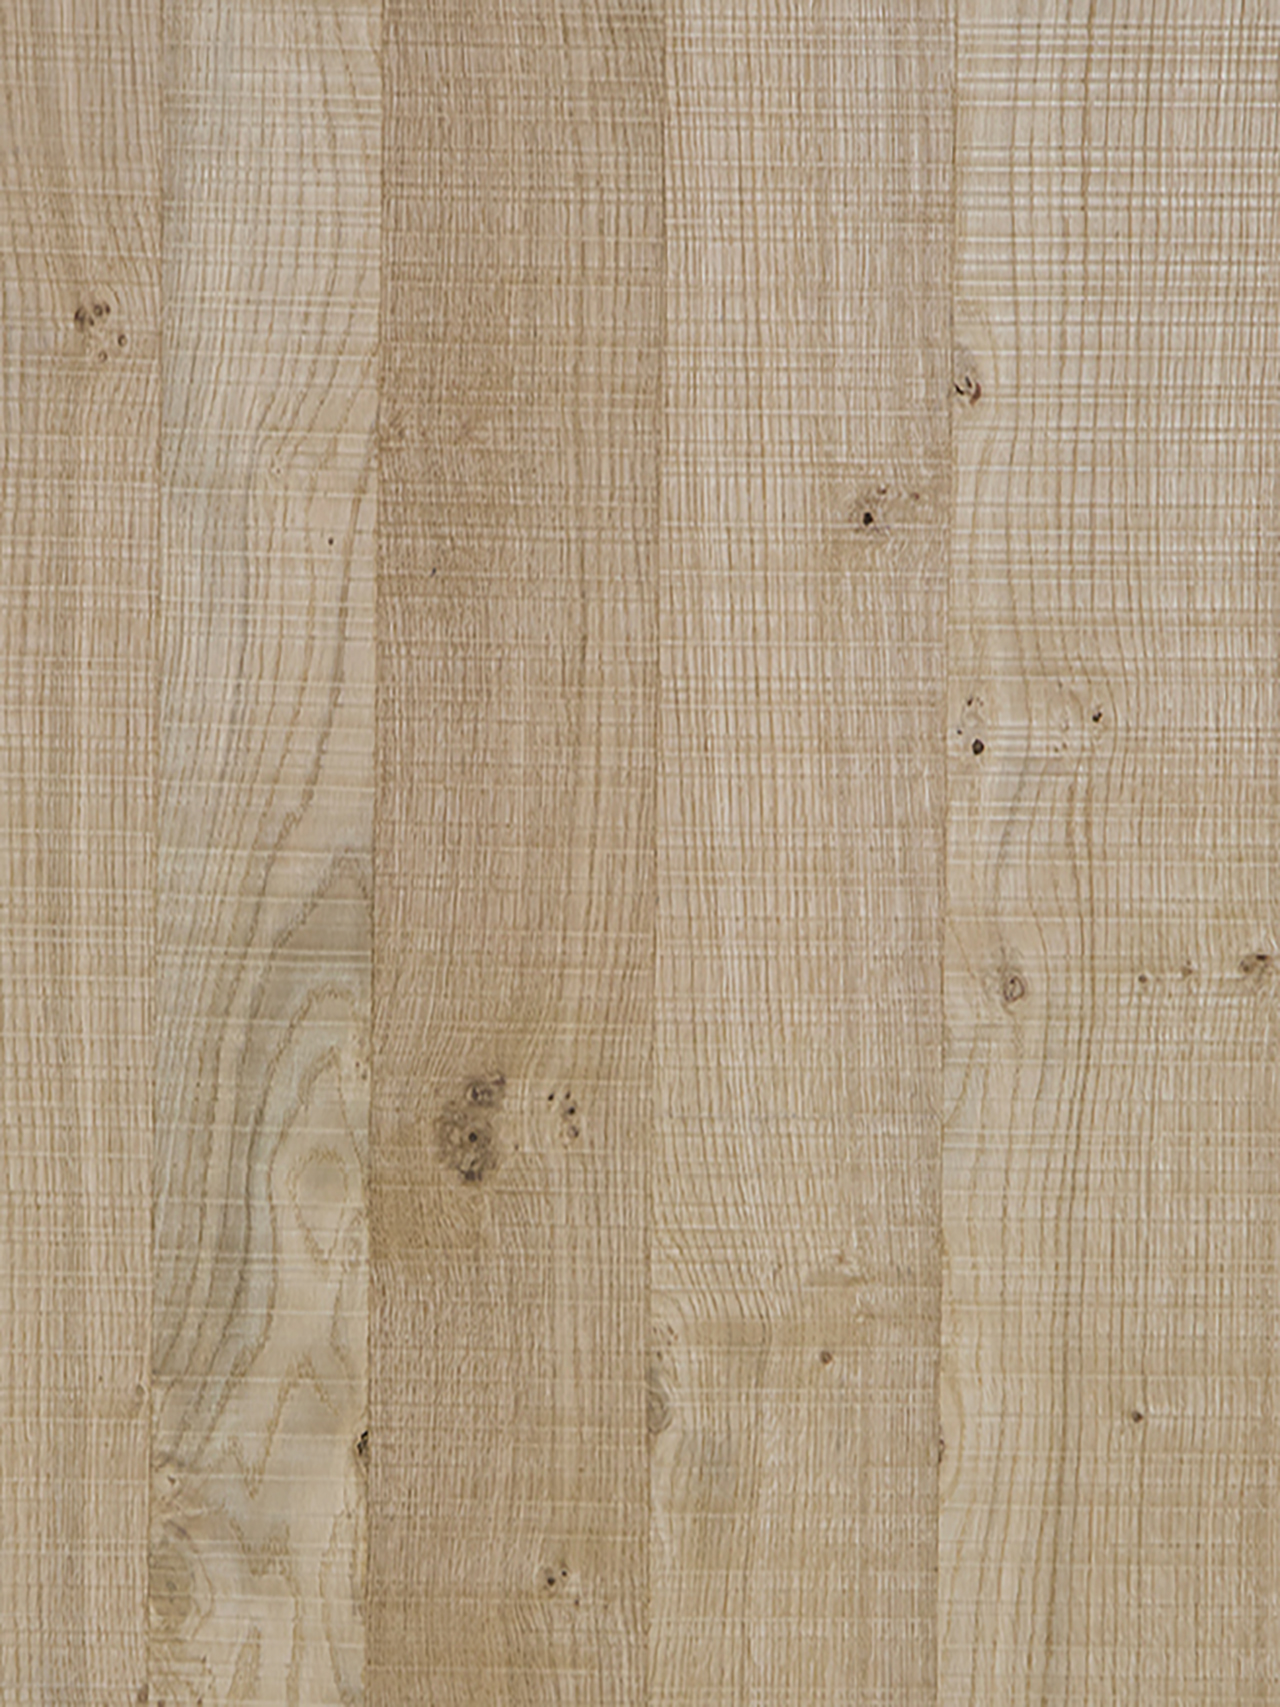 Rustic Oak Rough Cut